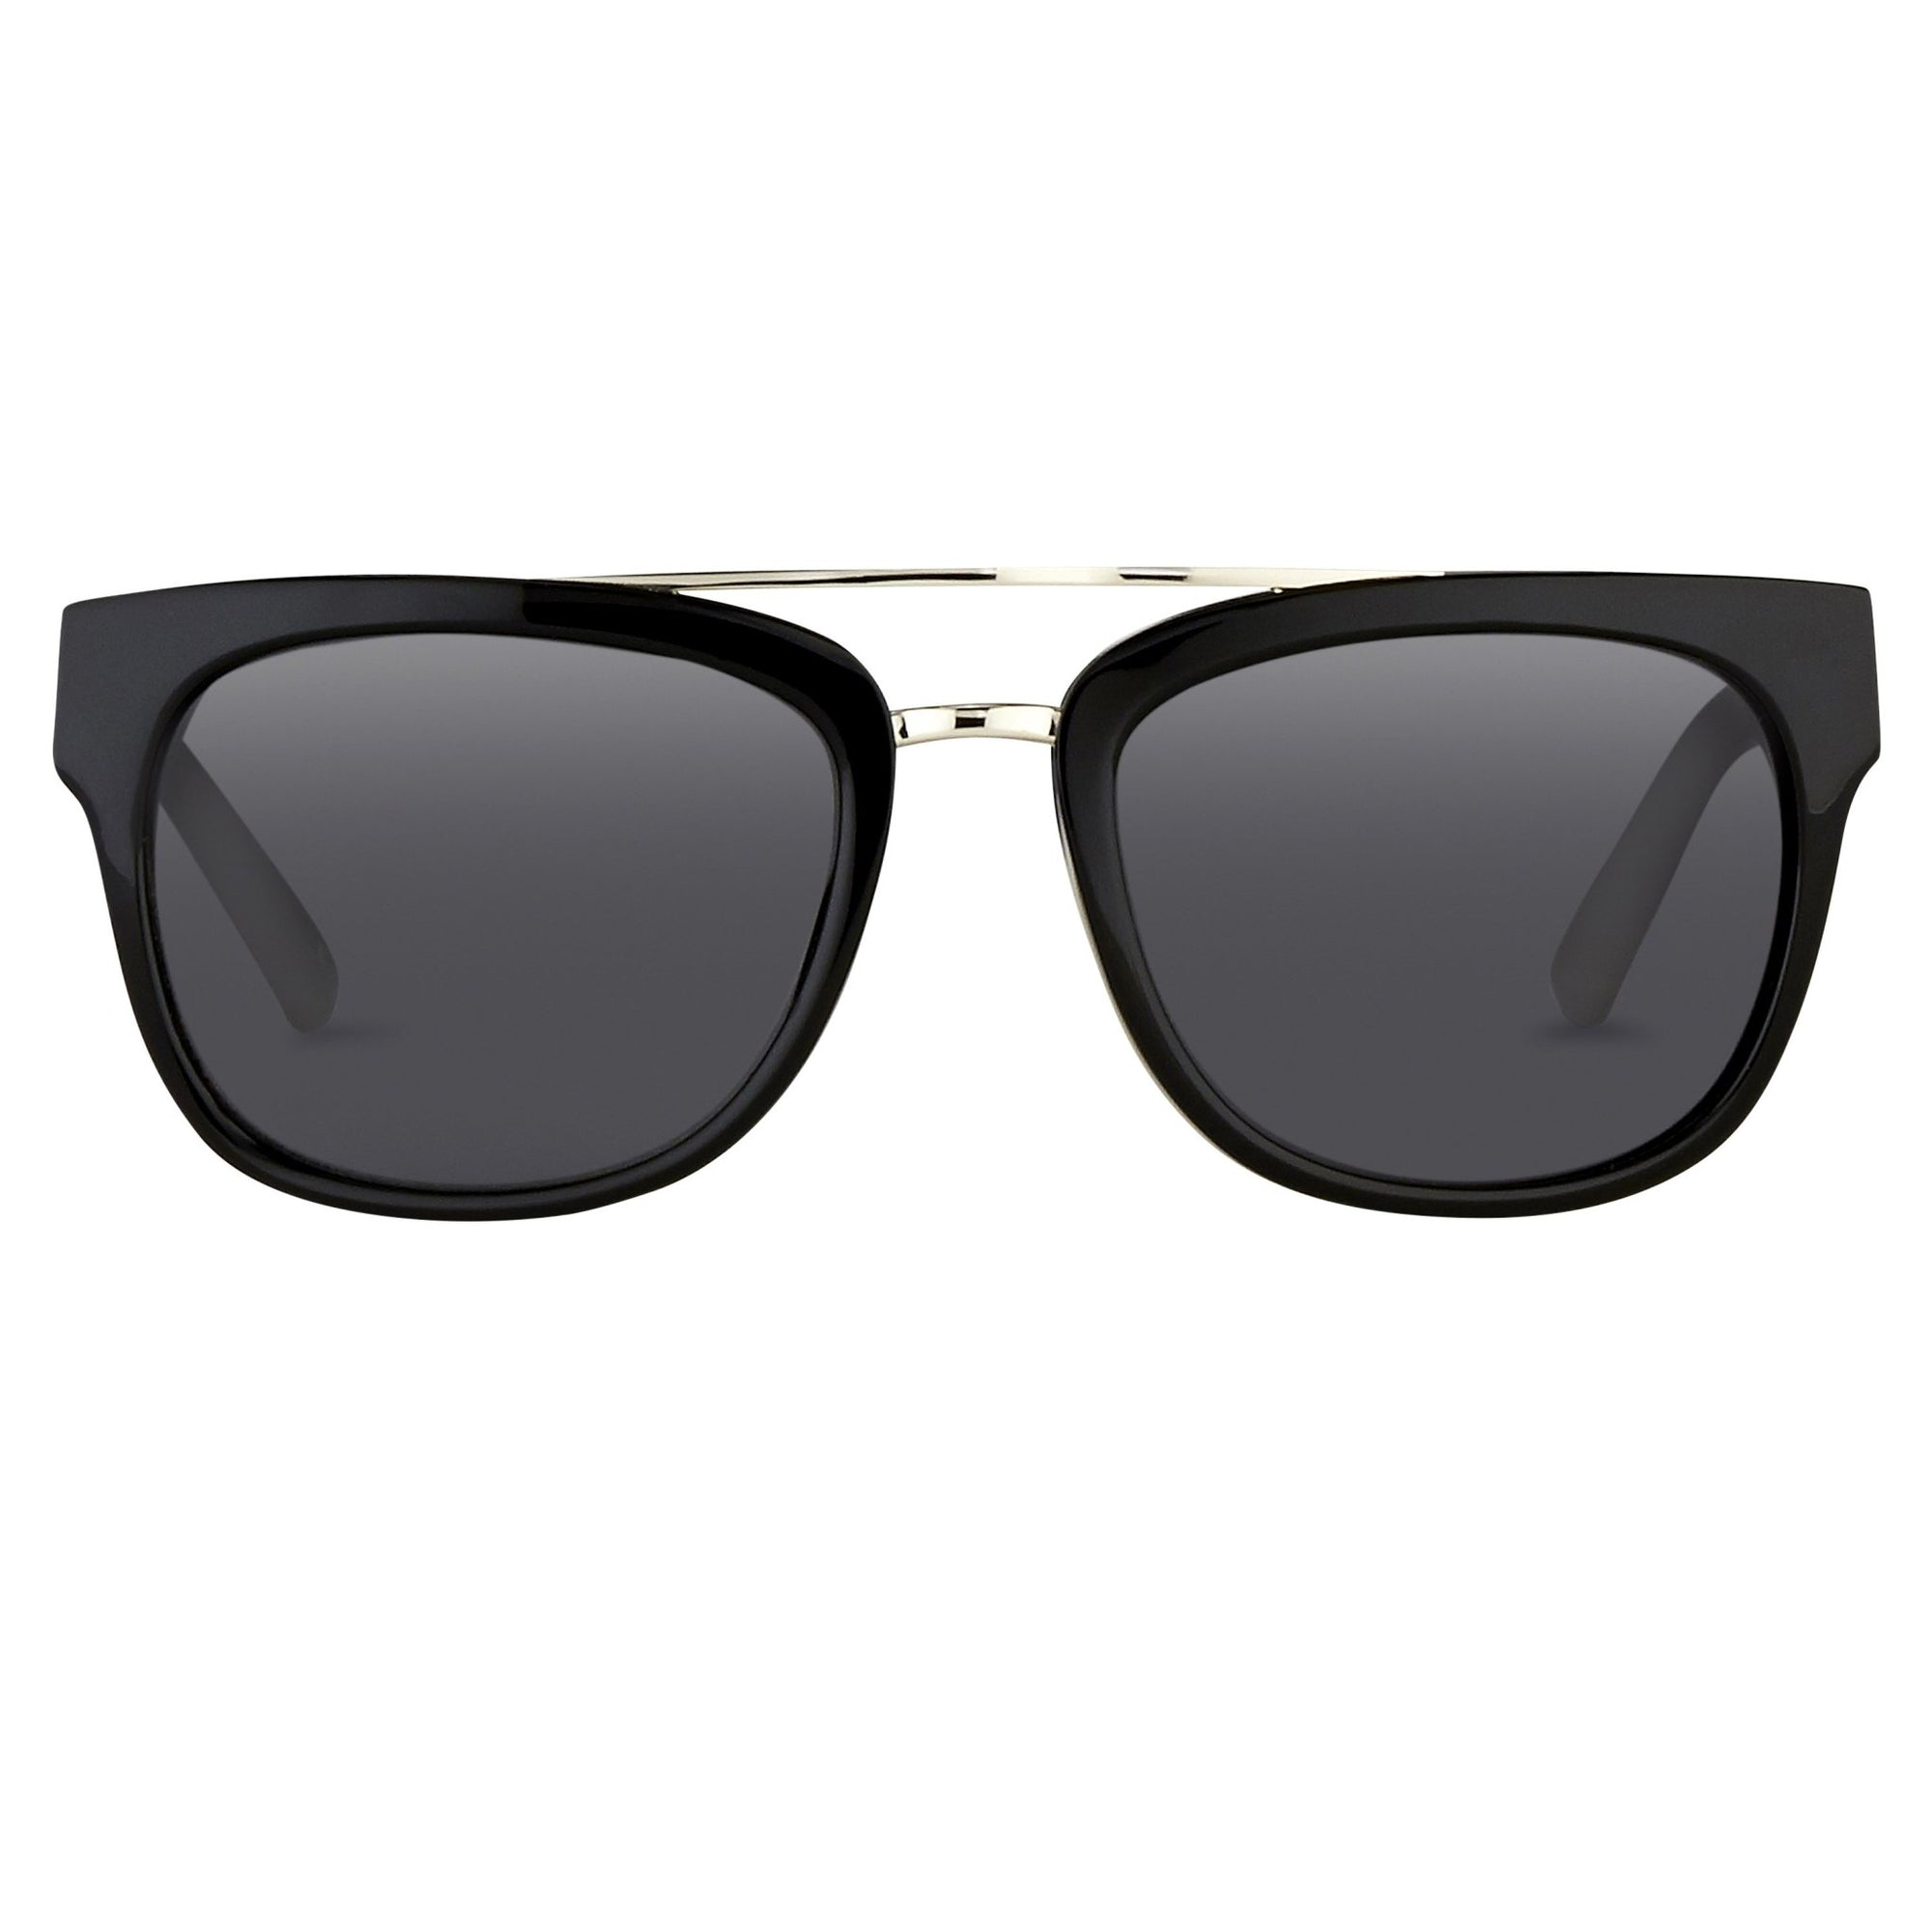 Phillip Lim Sunglasses with Rectangular Black Silver and Fog Green Lenses Category 3 - PL144C1SUN - Watches & Crystals